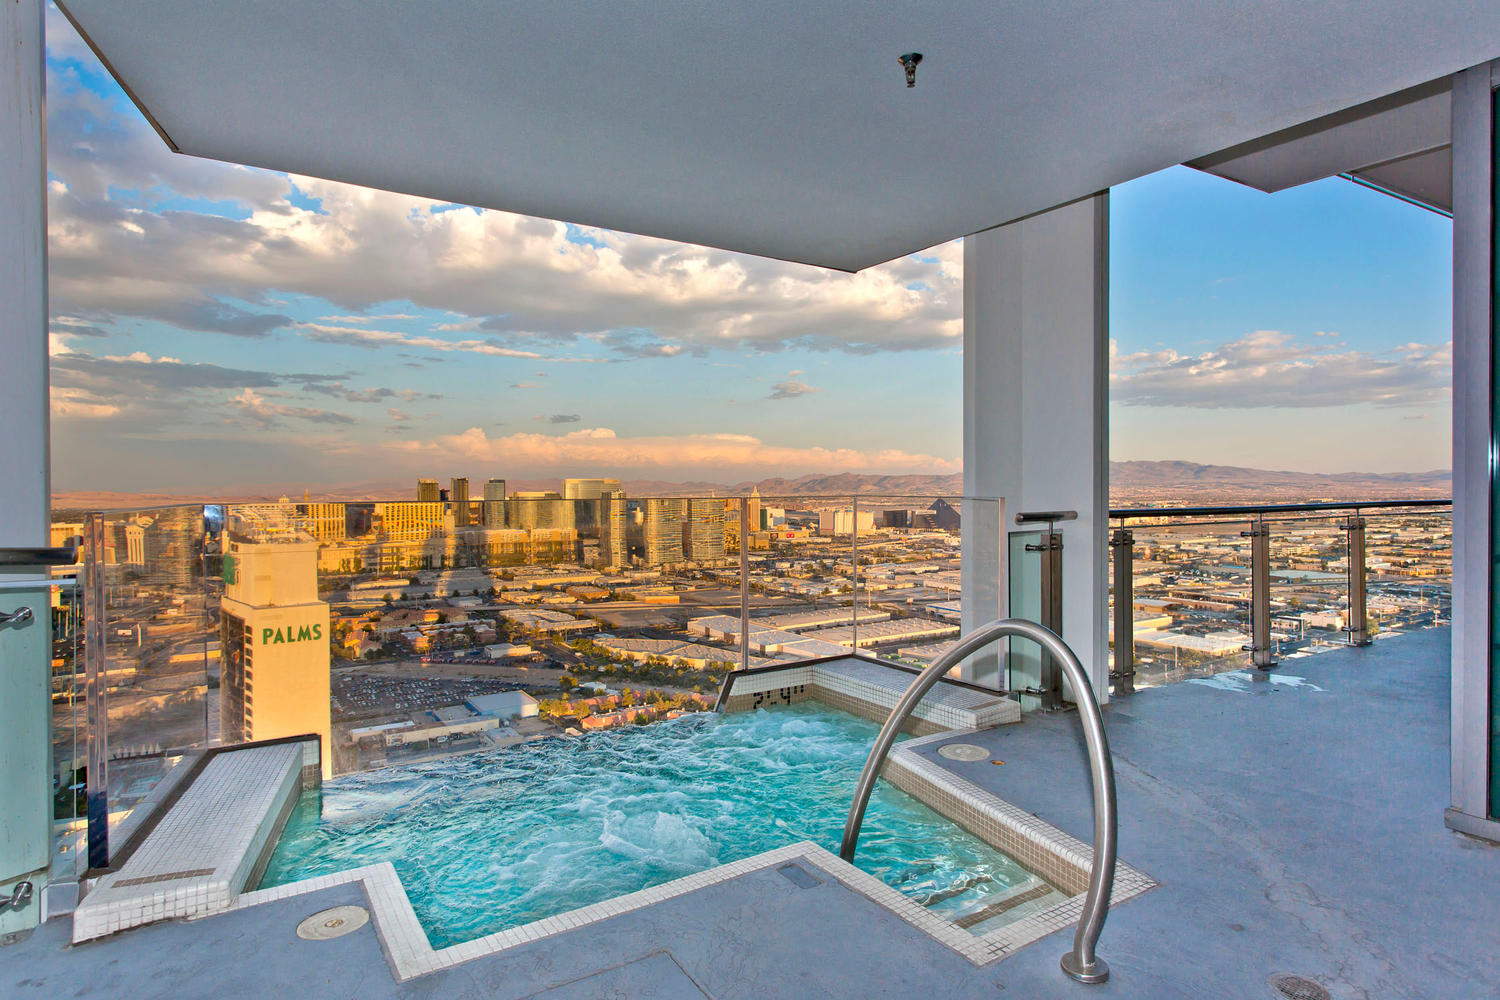 Vegas Huge Penthouse Hottub On Balcony Stripviews Apartments For Rent In Las Vegas Nevada United States